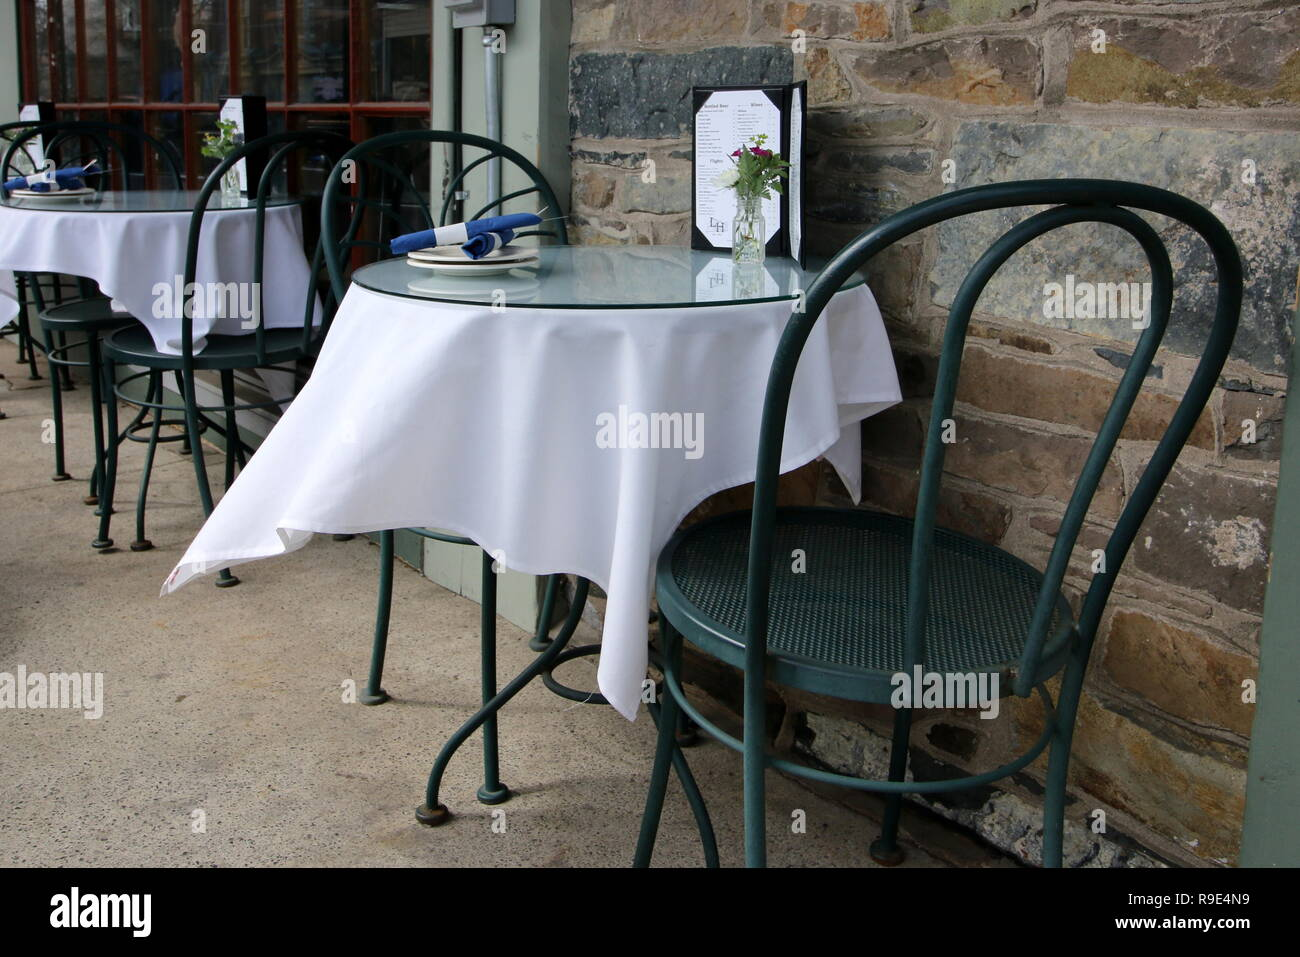 The outdoor cafe has white tablecloths. - Stock Image